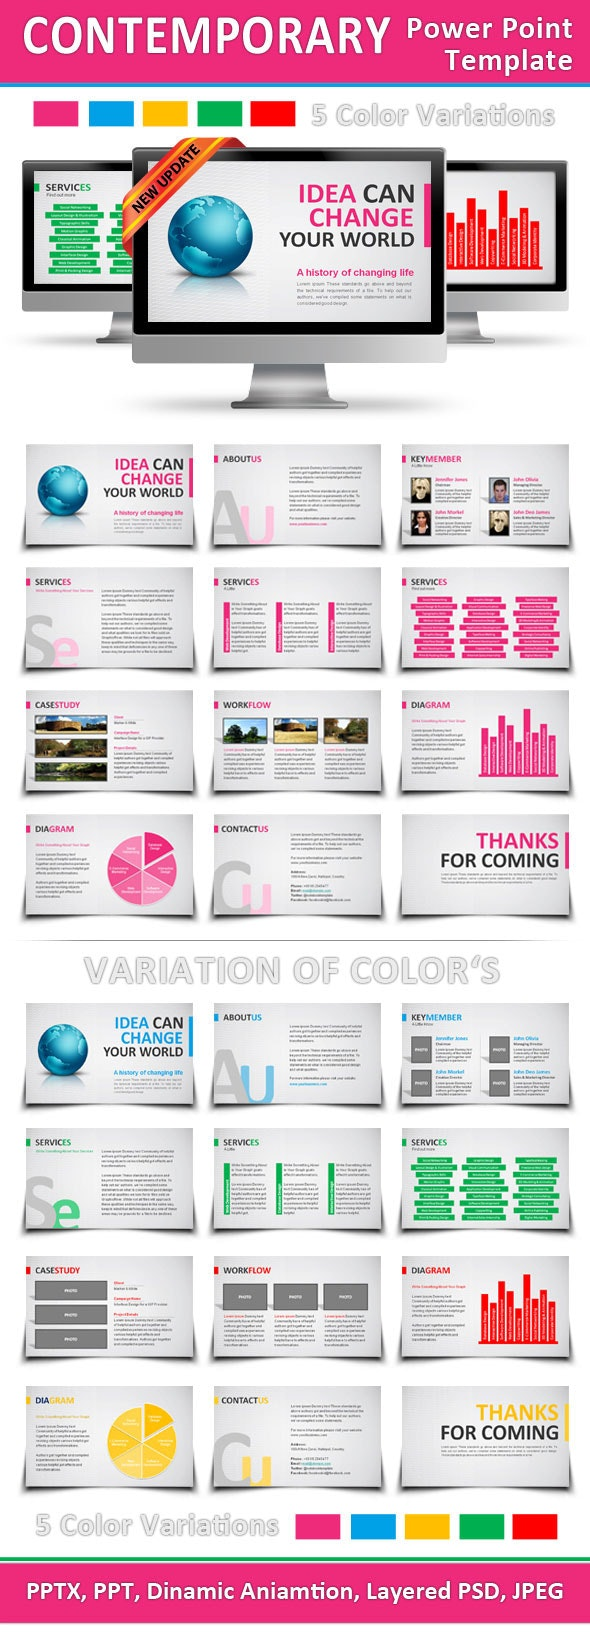 Contemporary Power Point Template - PowerPoint Templates Presentation Templates